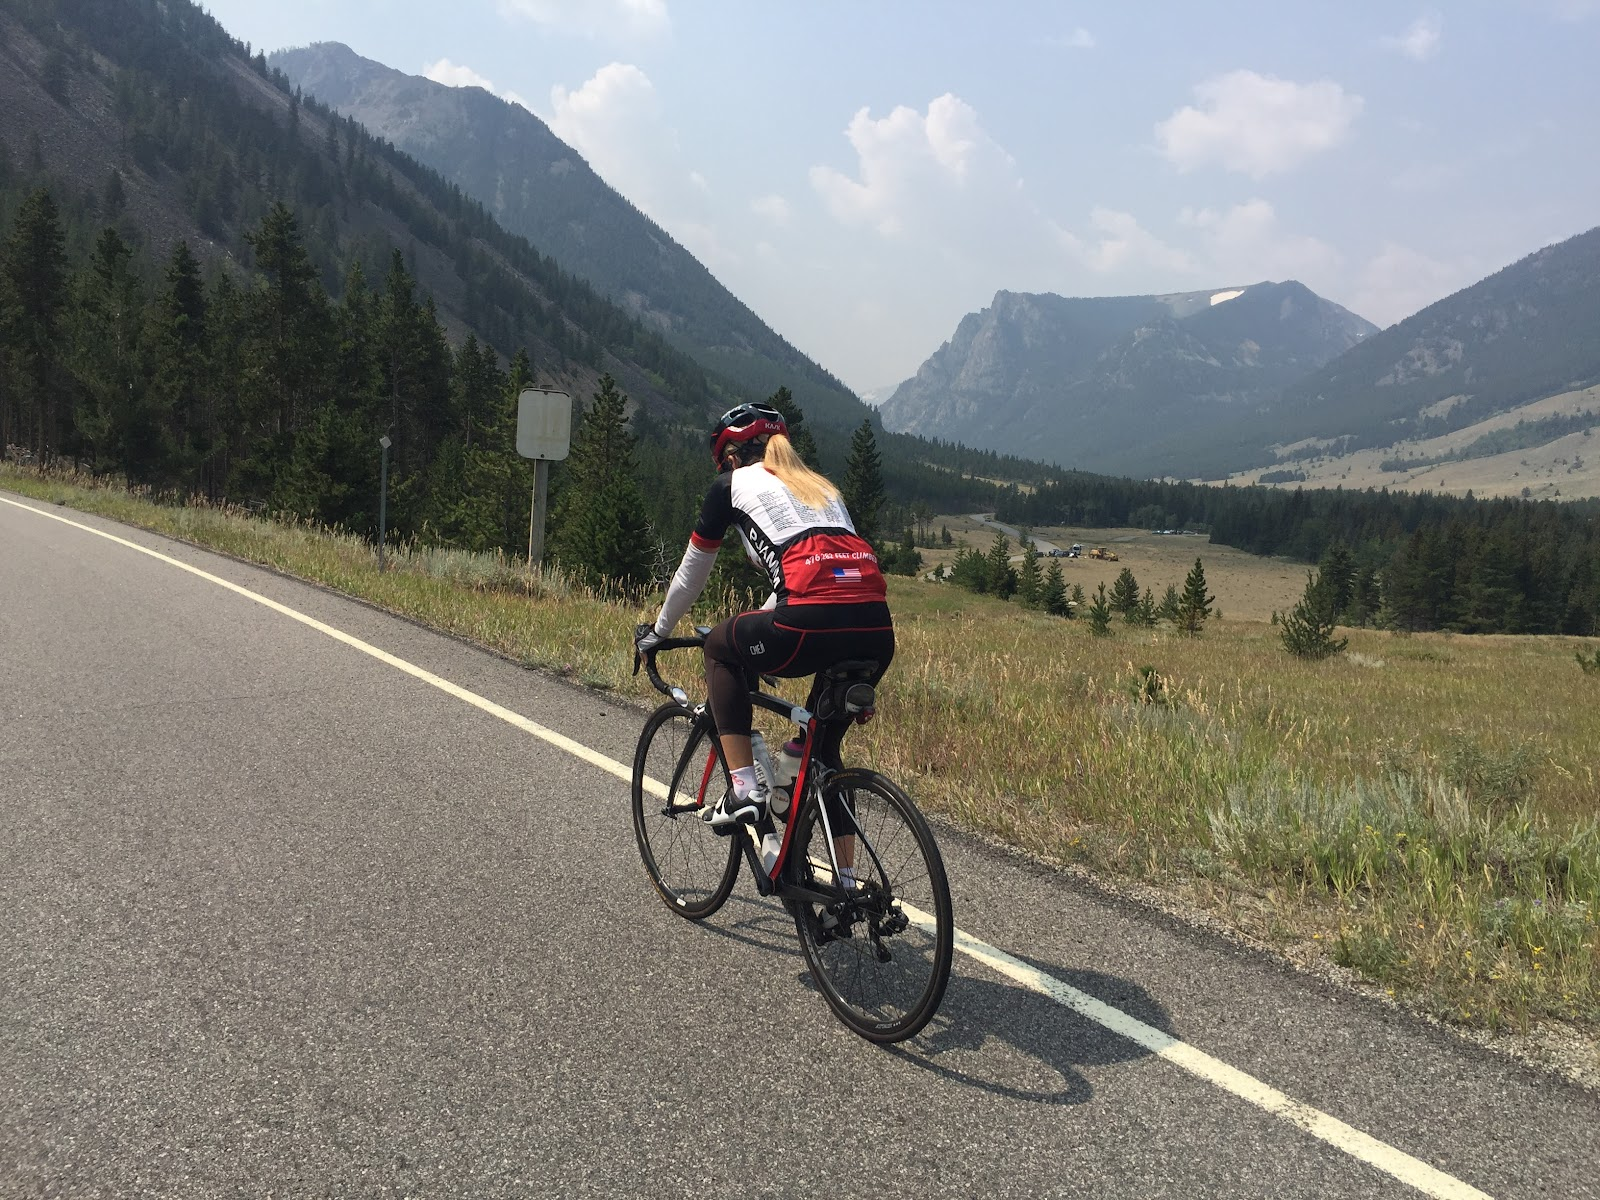 Cycling Bear Tooth Pass North - cyclist on bike on road with valley and mountains in background